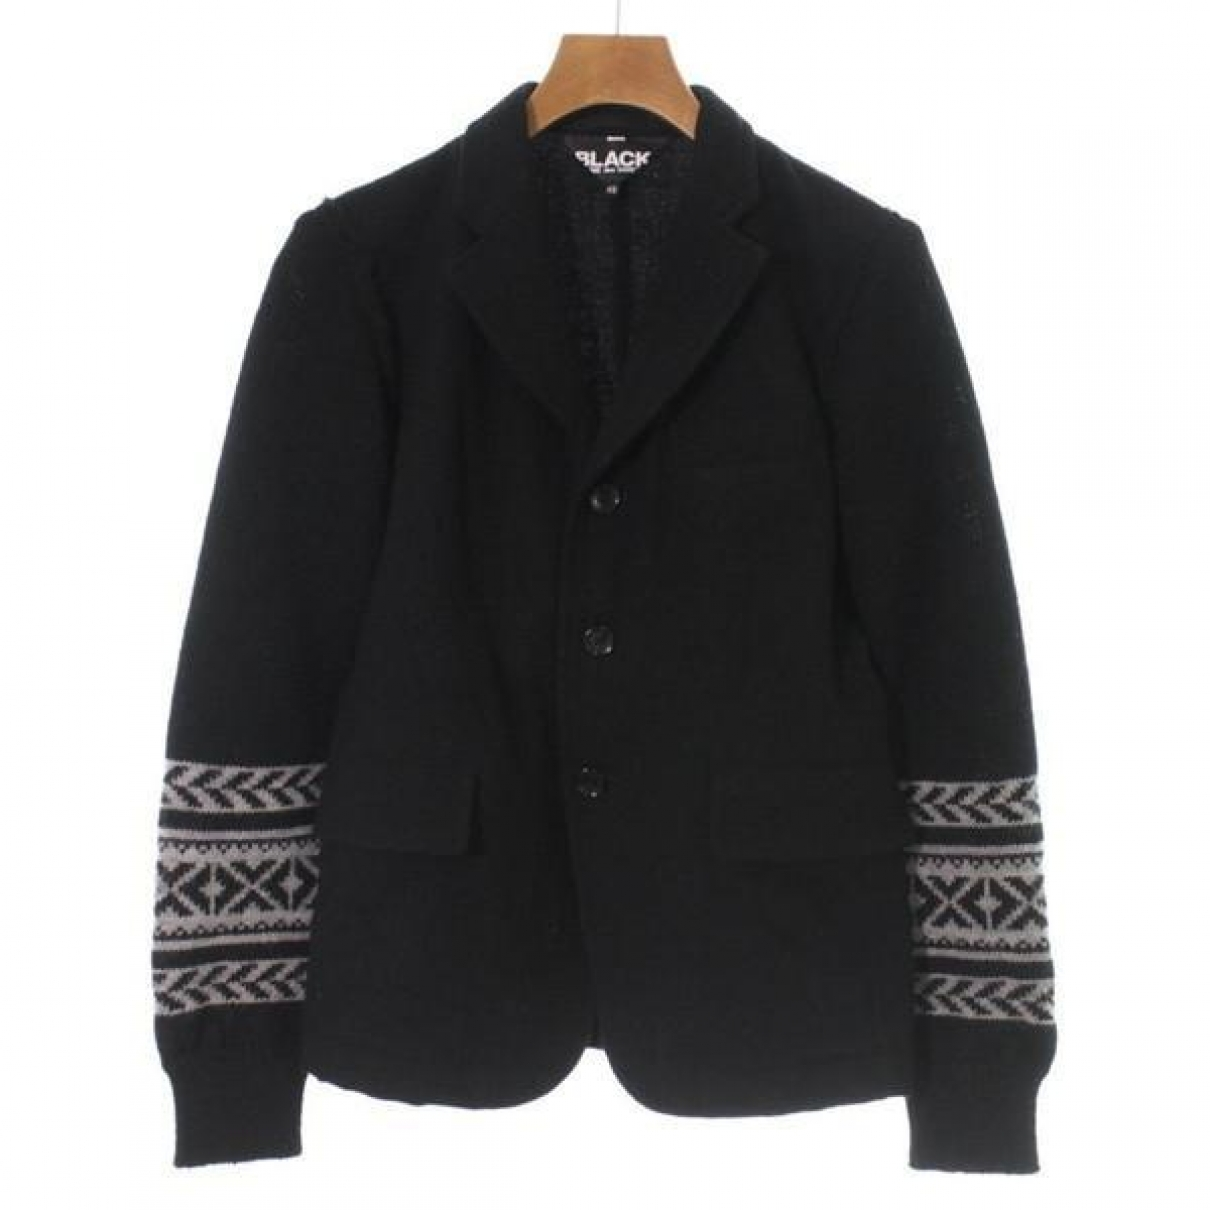 Comme Des Garcons \N Black Wool jacket for Women XS International